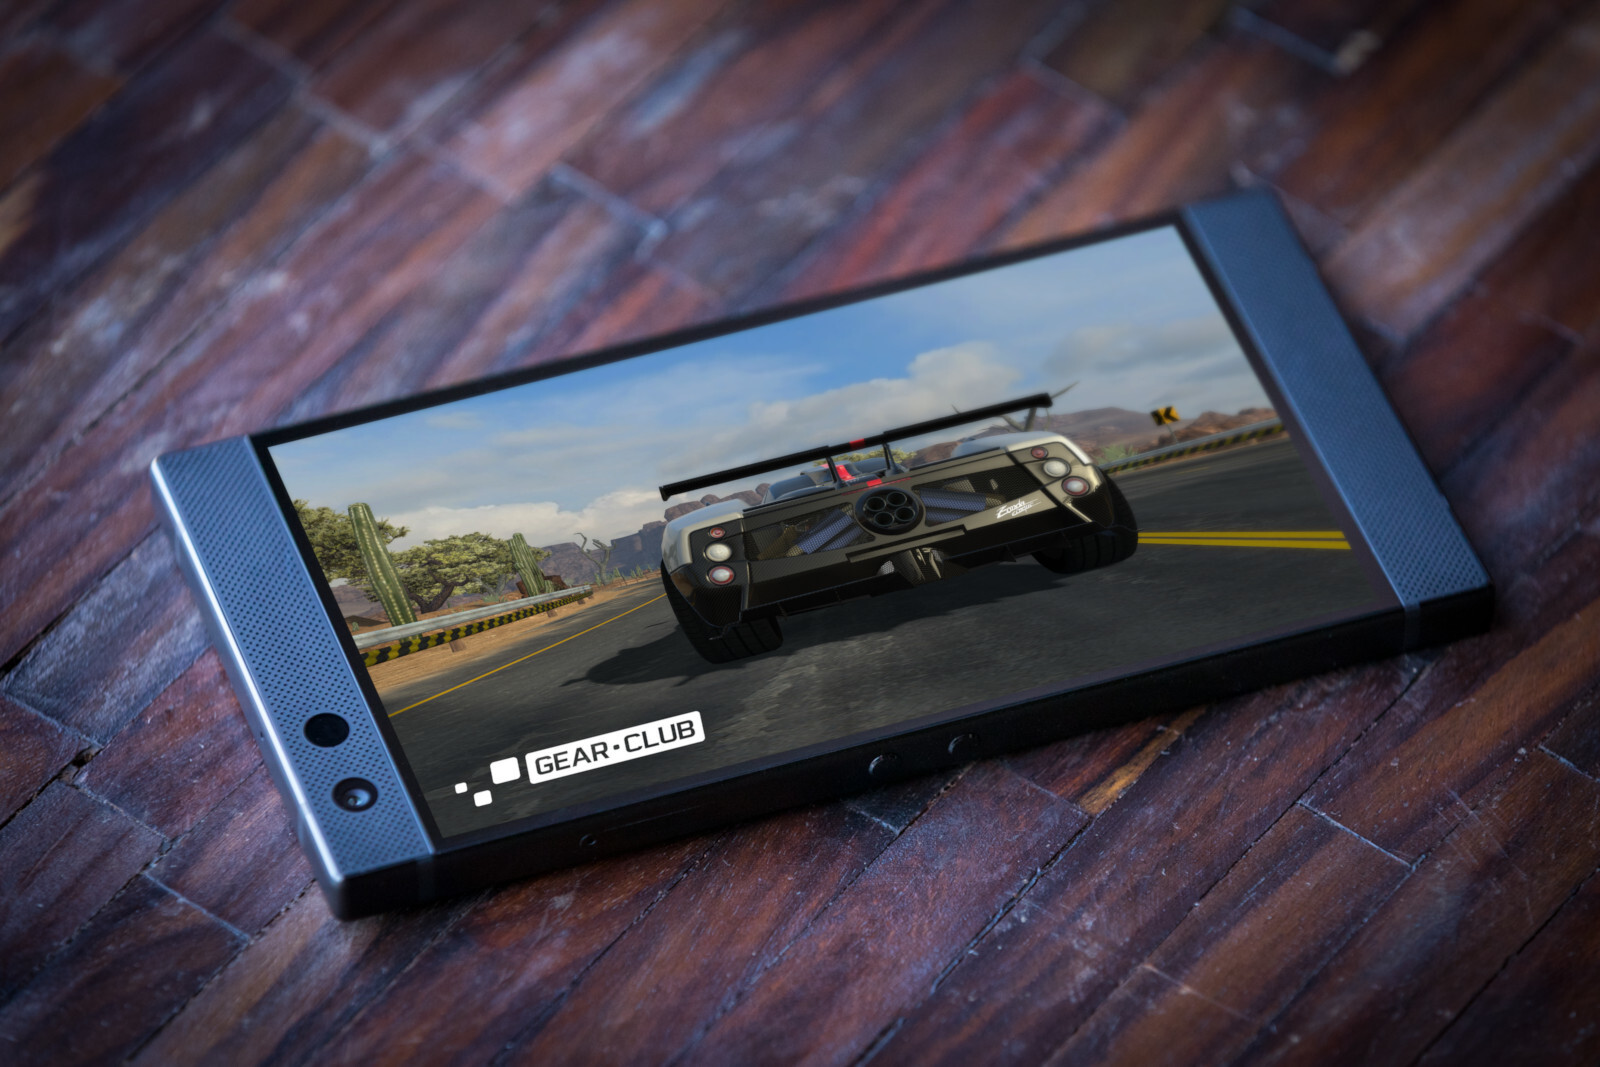 http://i-cdn.phonearena.com//images/articles/333267-image/razer-phone-2-1.jpg